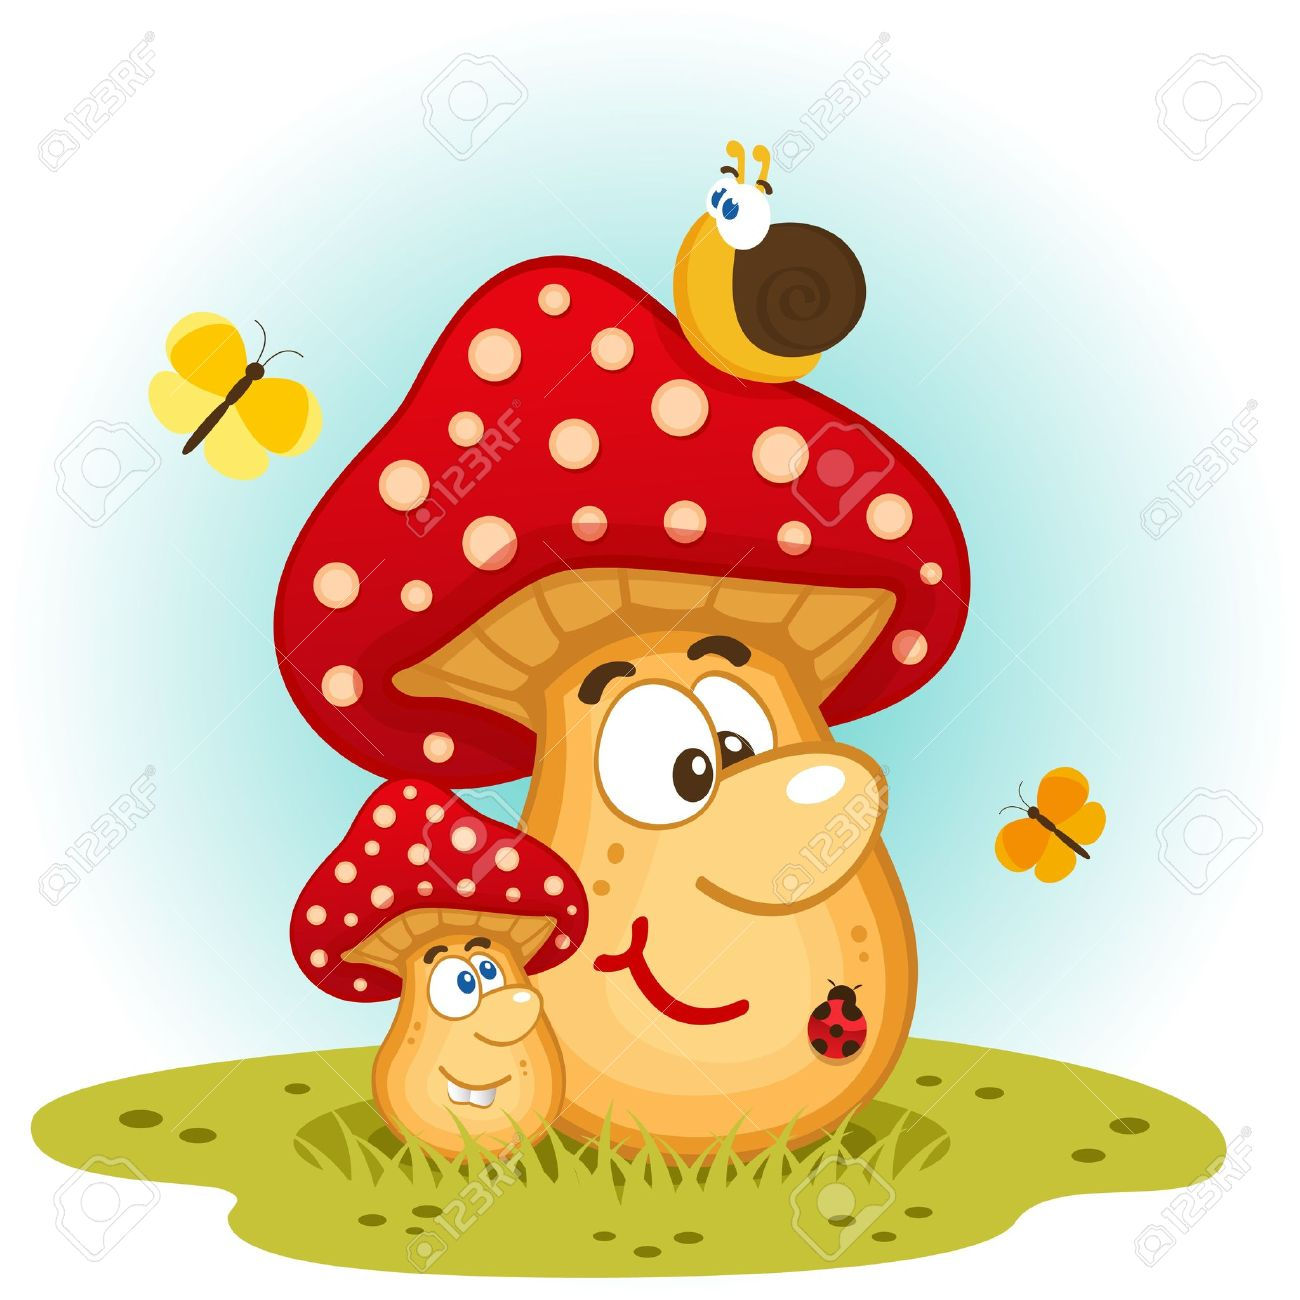 Mushrooms and insects vector Standard-Bild - 17569541